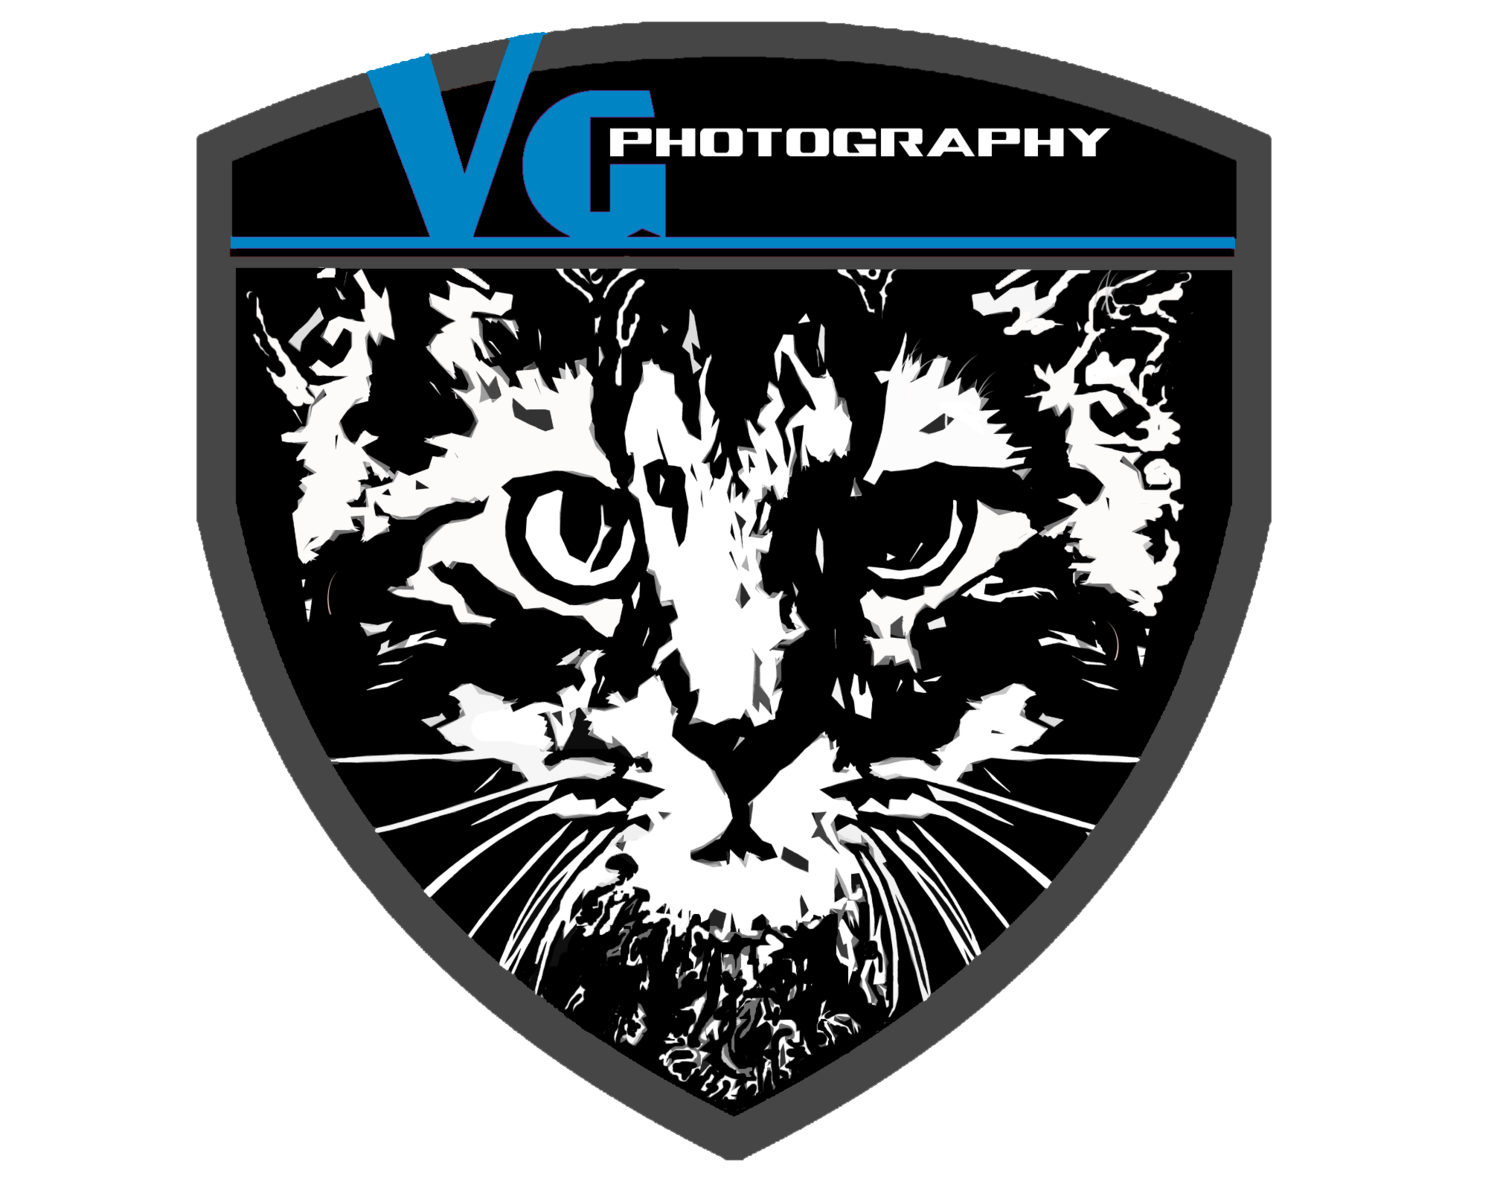 VG-Photography